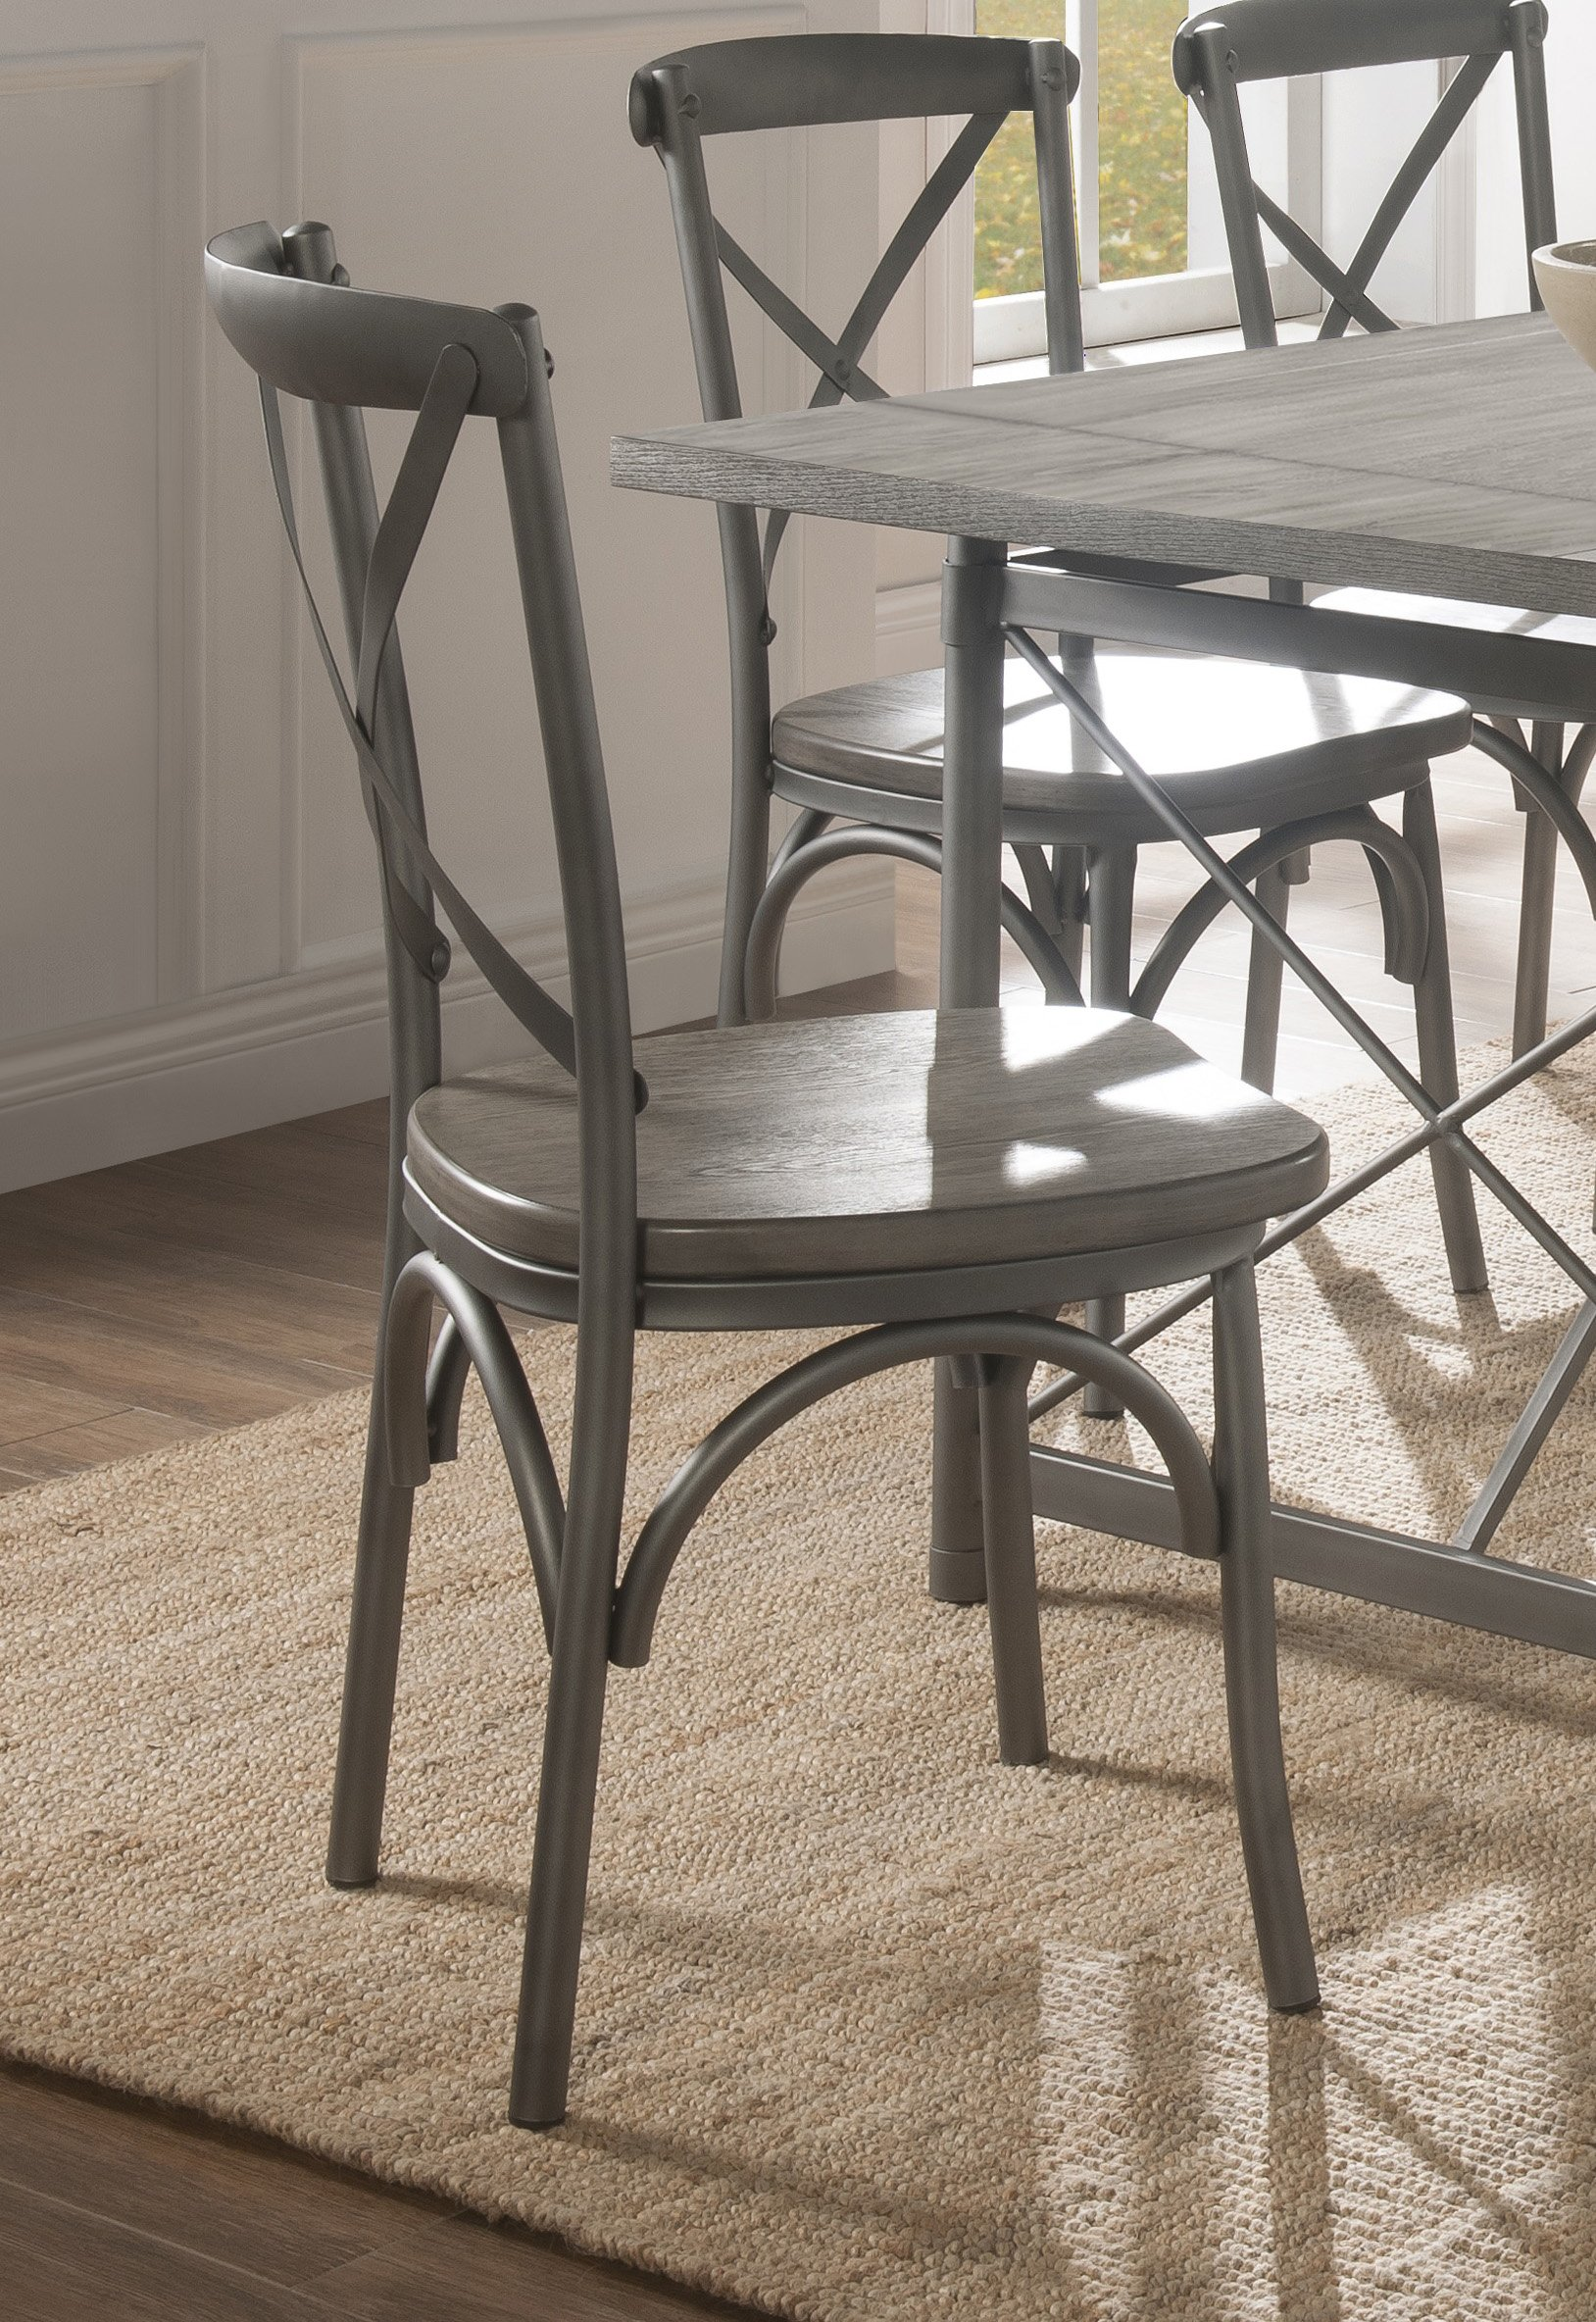 metal dining chairs wood table. Industrial Weathered Wood and Metal Dining Chair  Gray 7 Piece Set RC